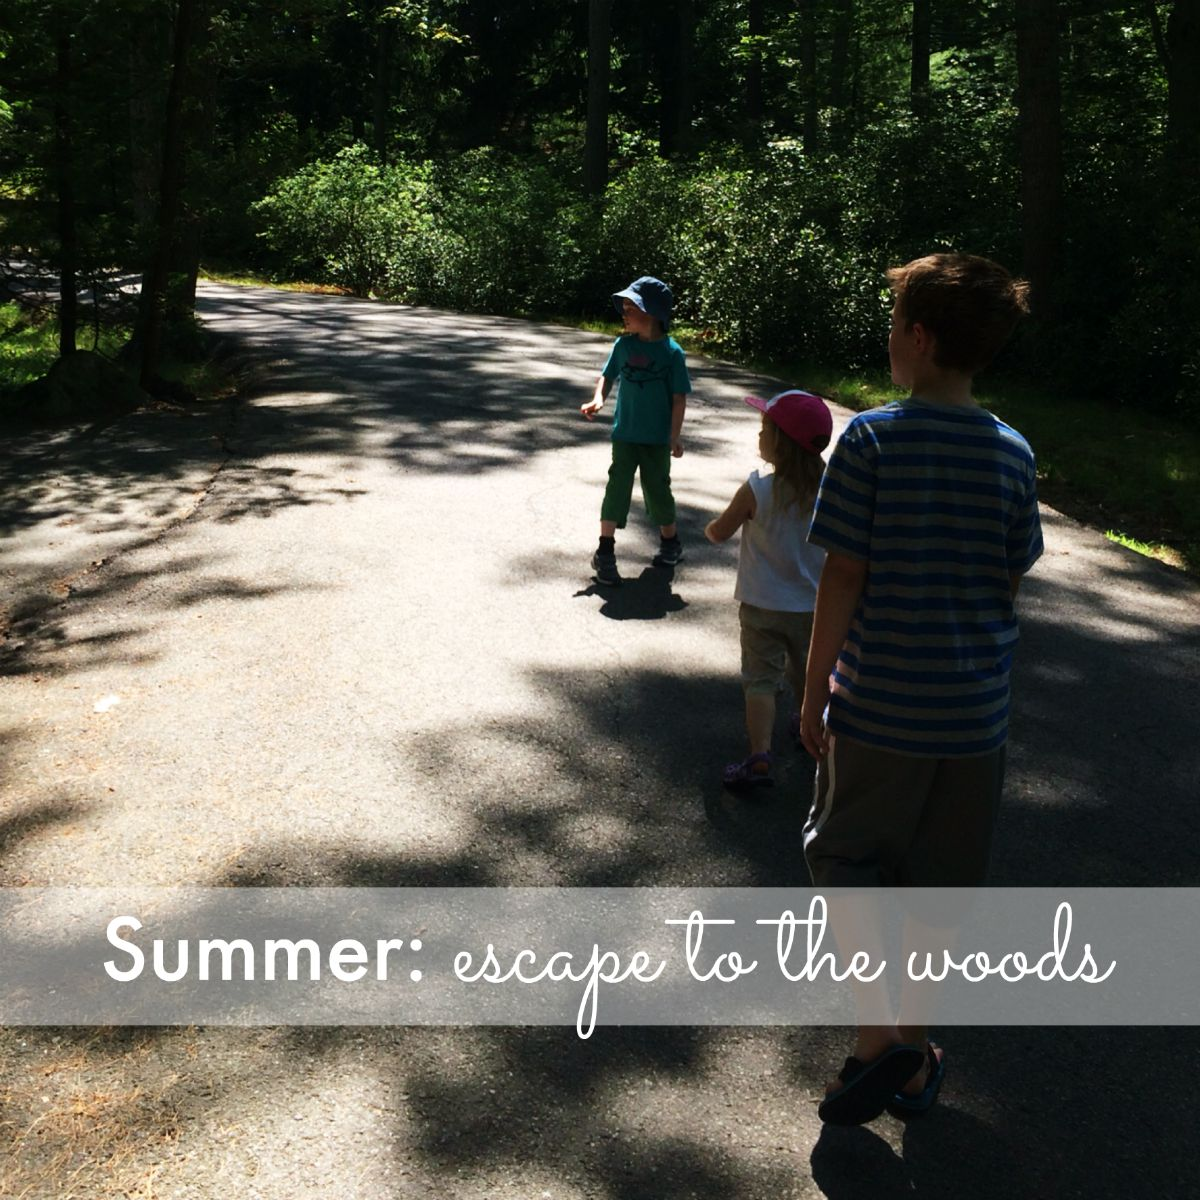 Summer: escape to the woods